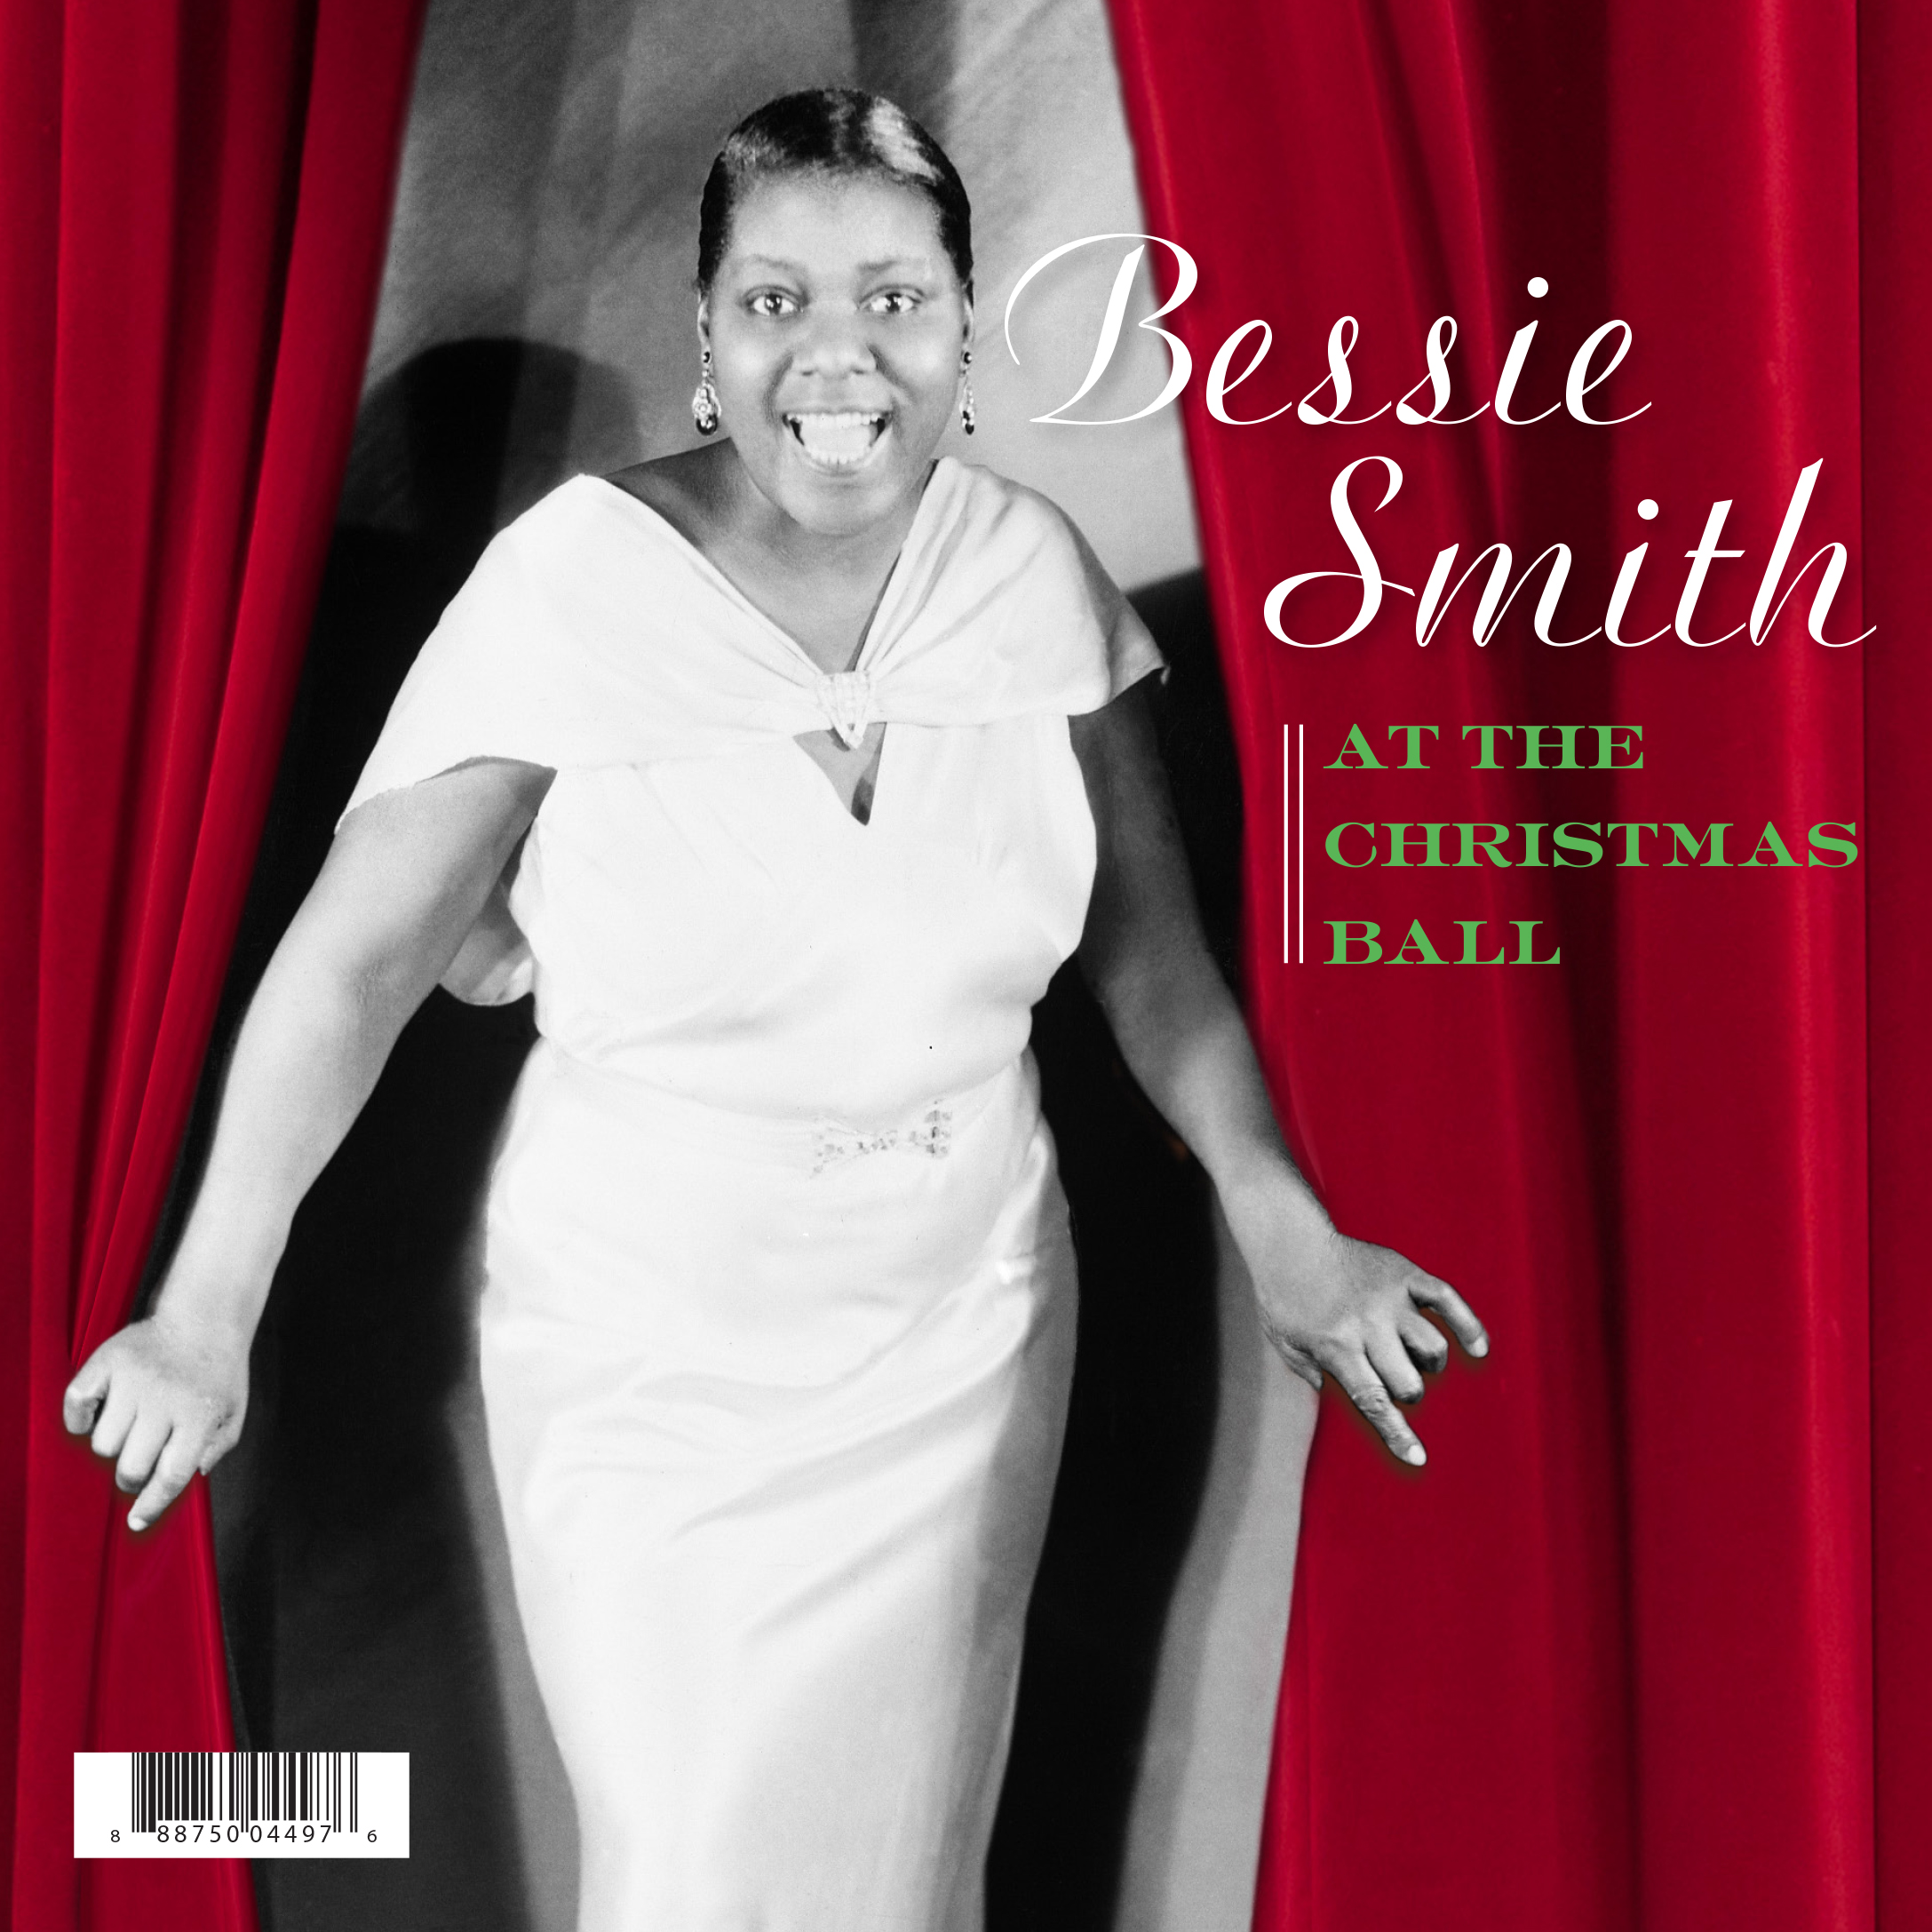 Bessie Smith - At The Christmas Ball